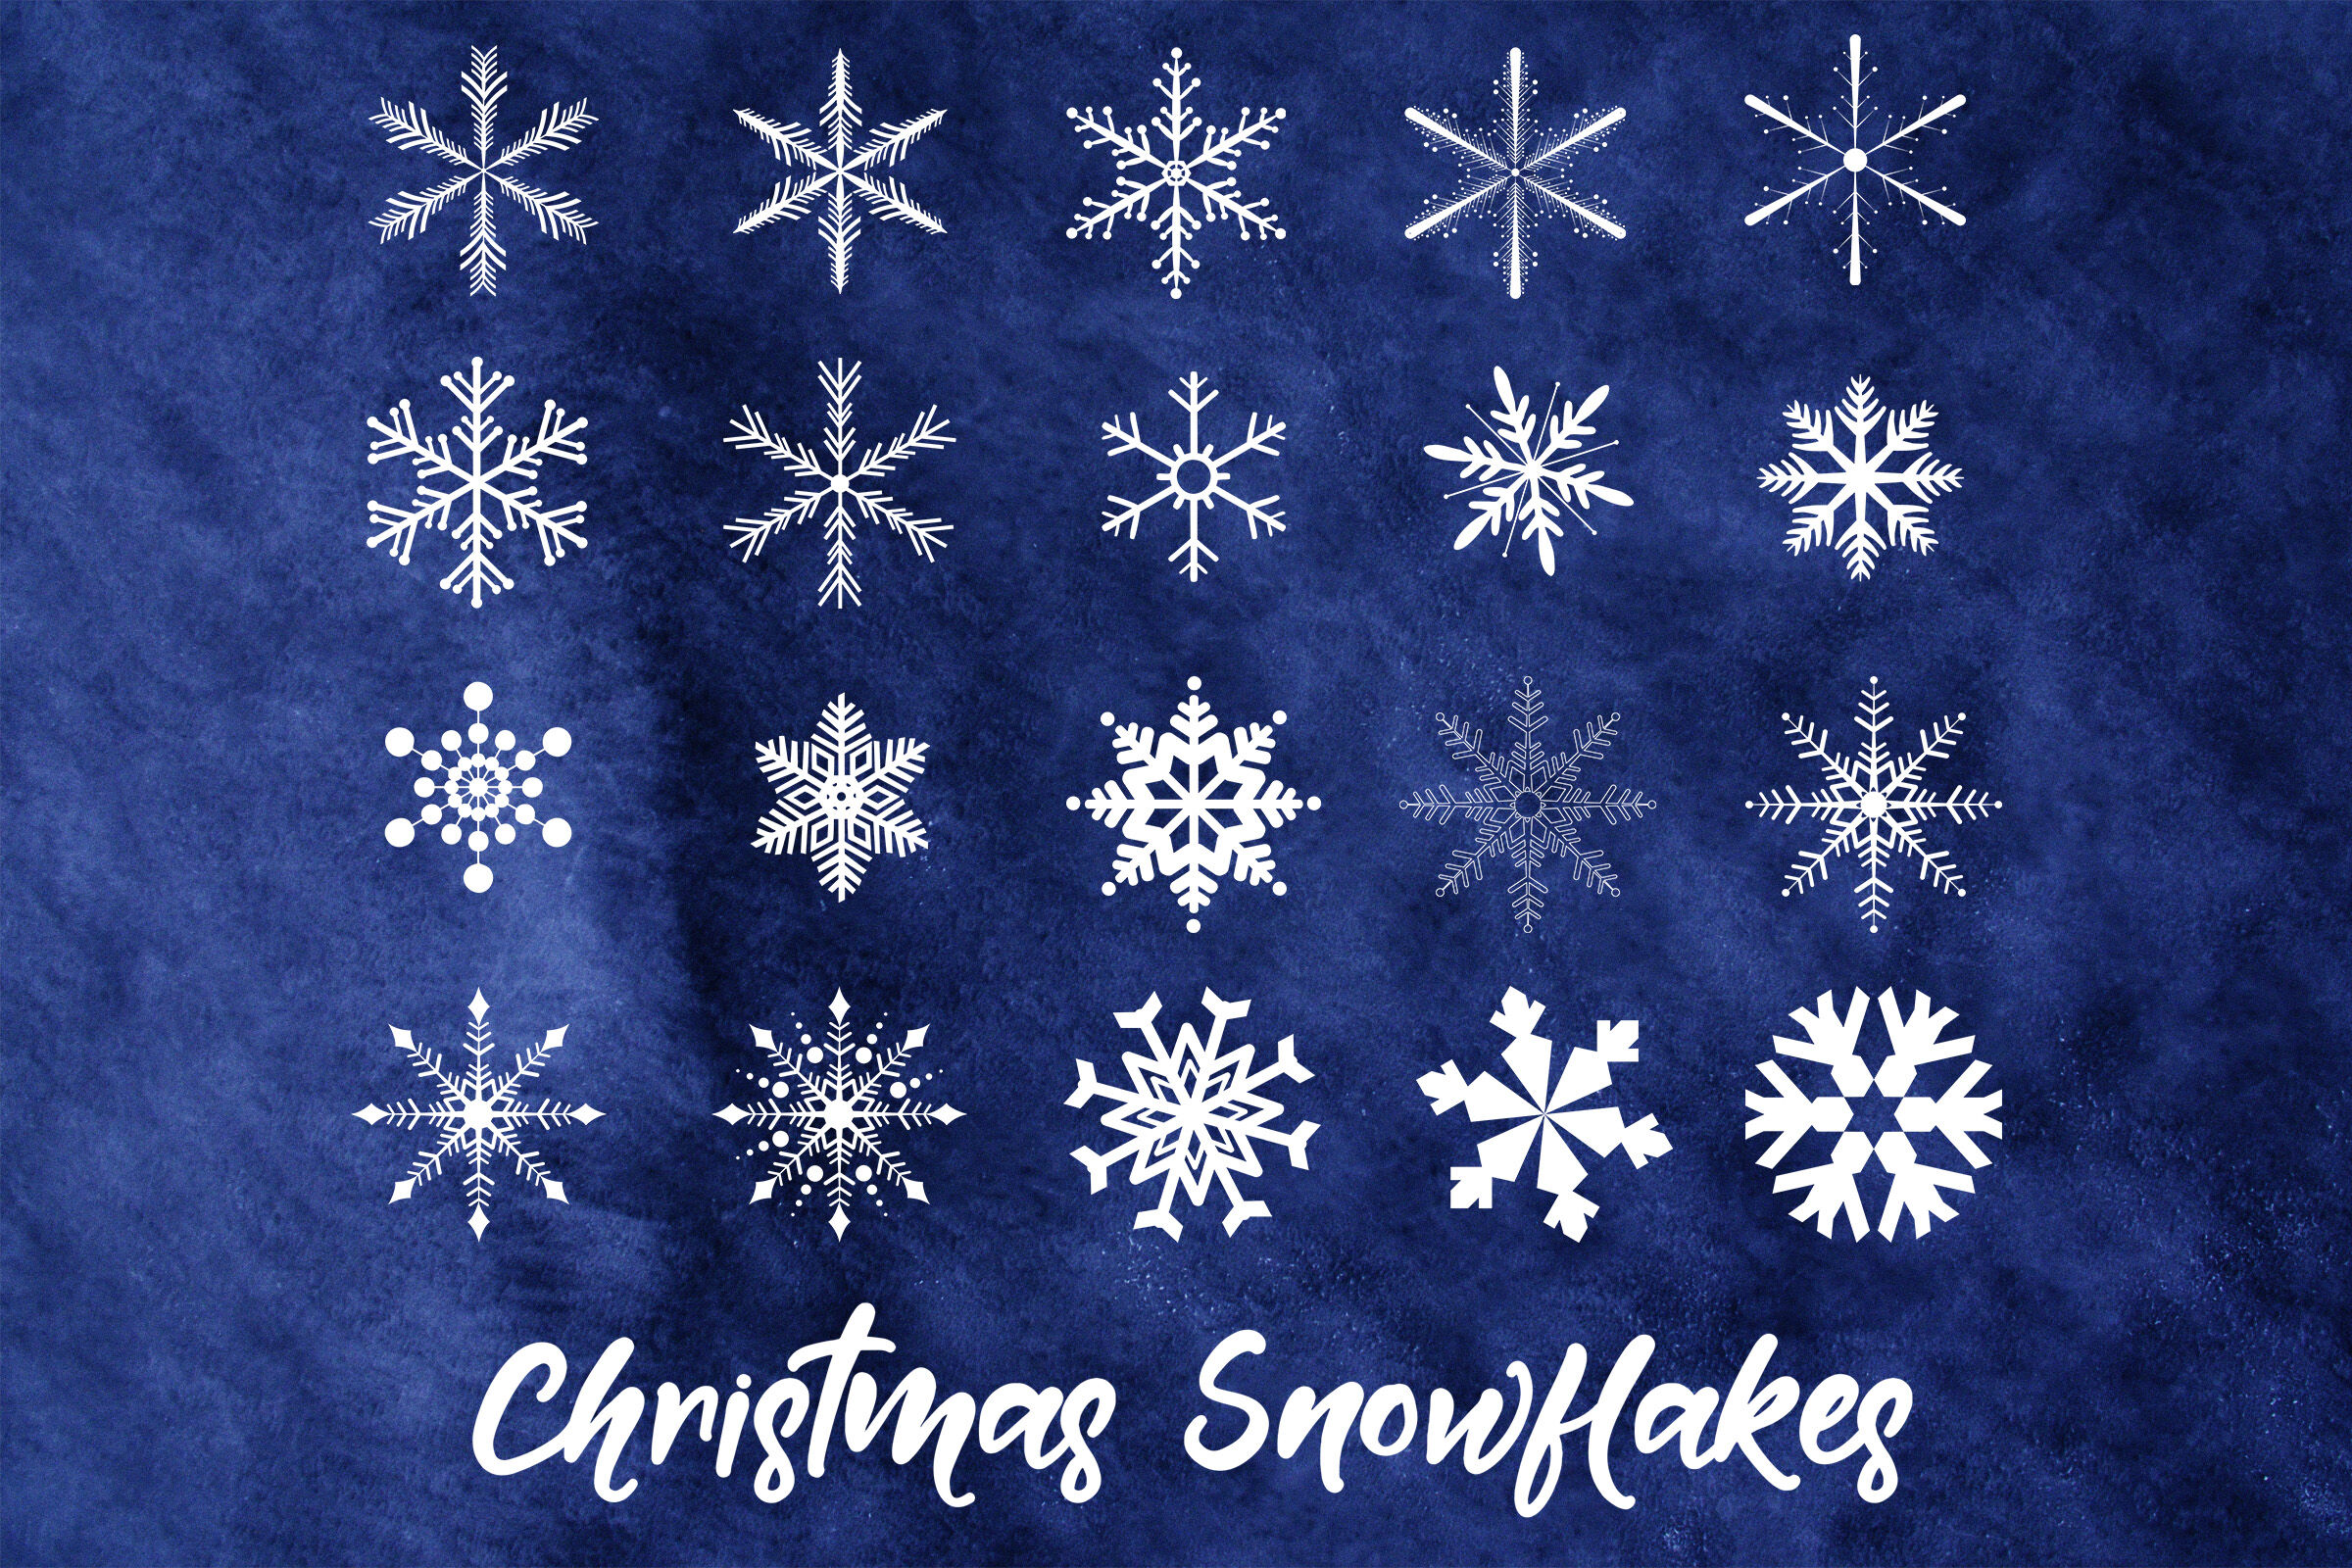 Christmas Snowflakes Clip Art 20 Snowflake Images By North Sea